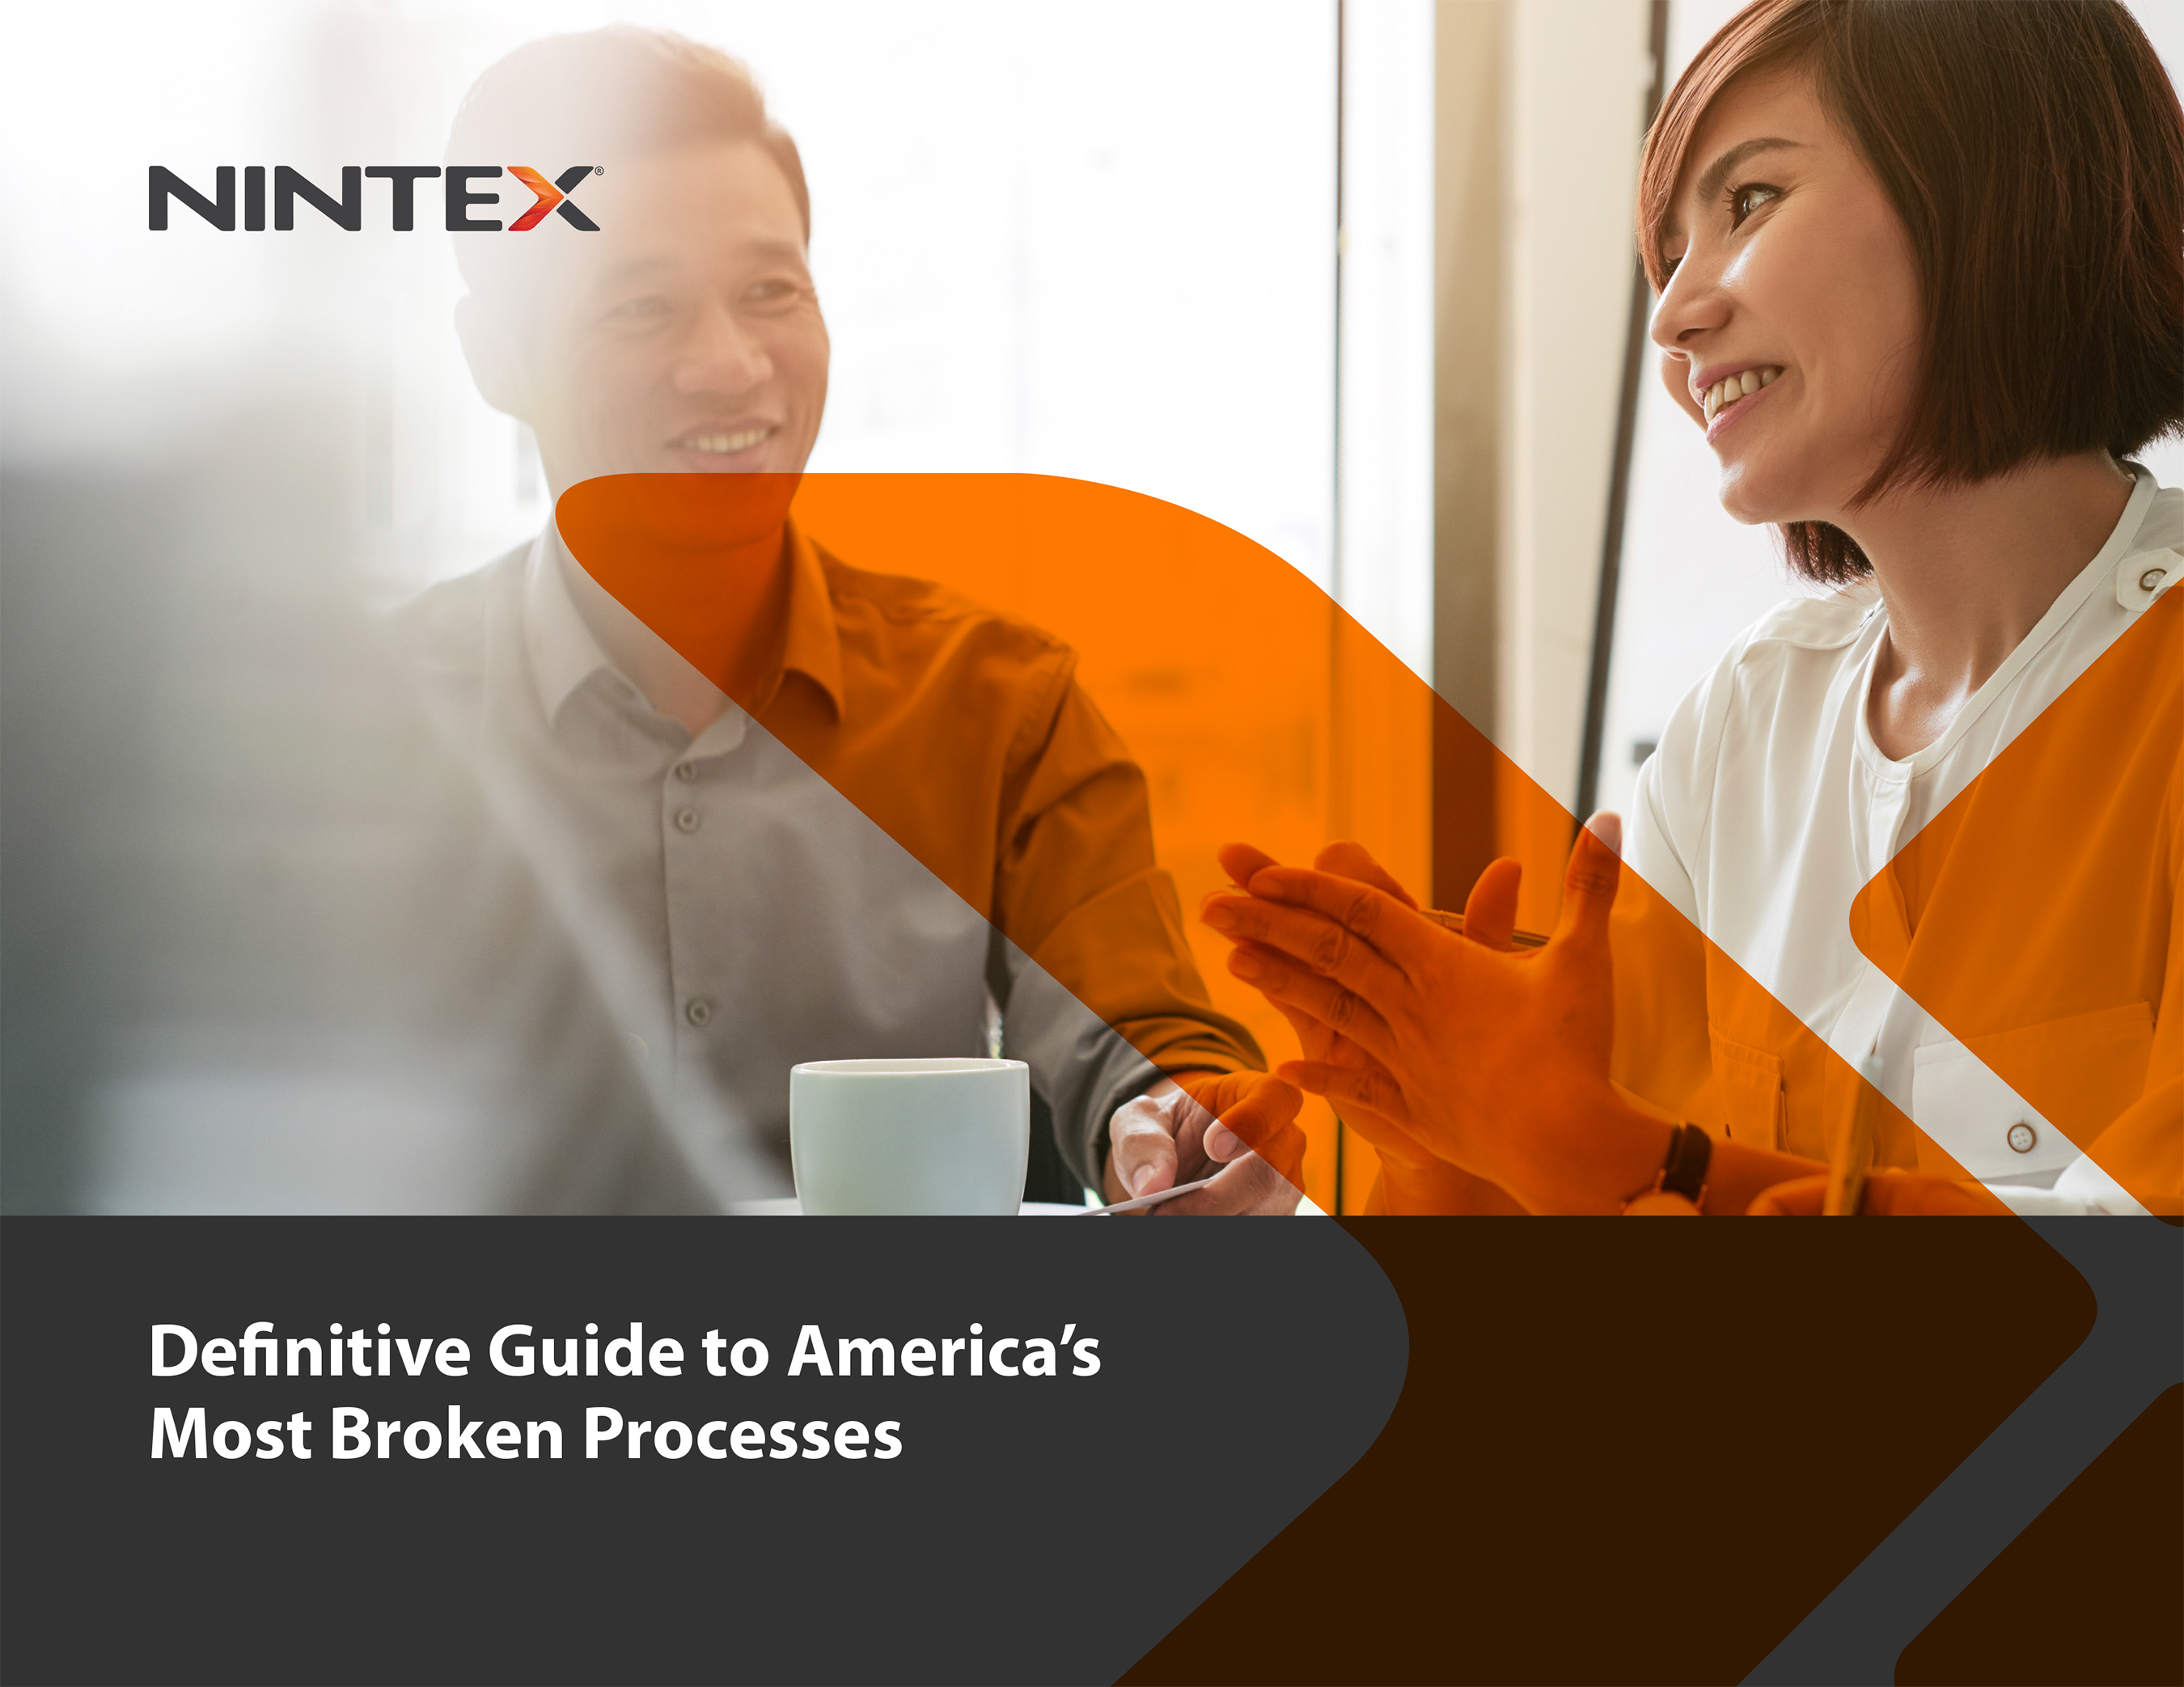 Nintex AMBP Ebook